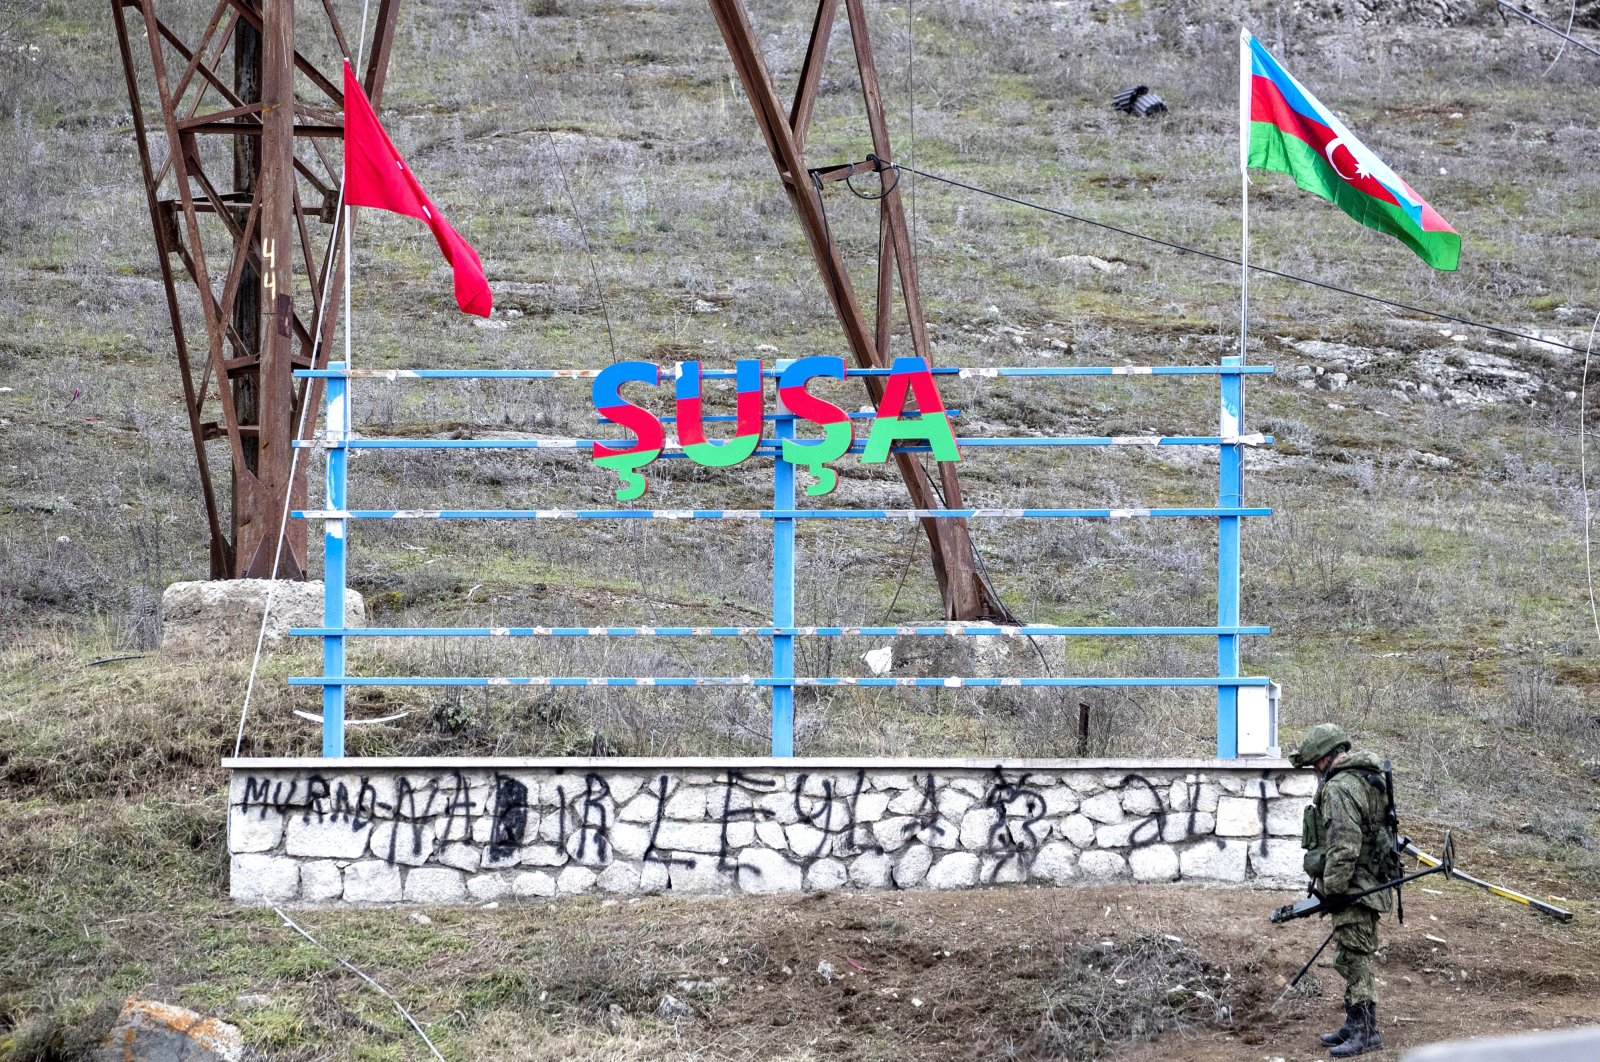 A Russian soldier is seen at the entrance to the town of Shusha, Azerbaijan, Nov. 26, 2020 (Getty Images)